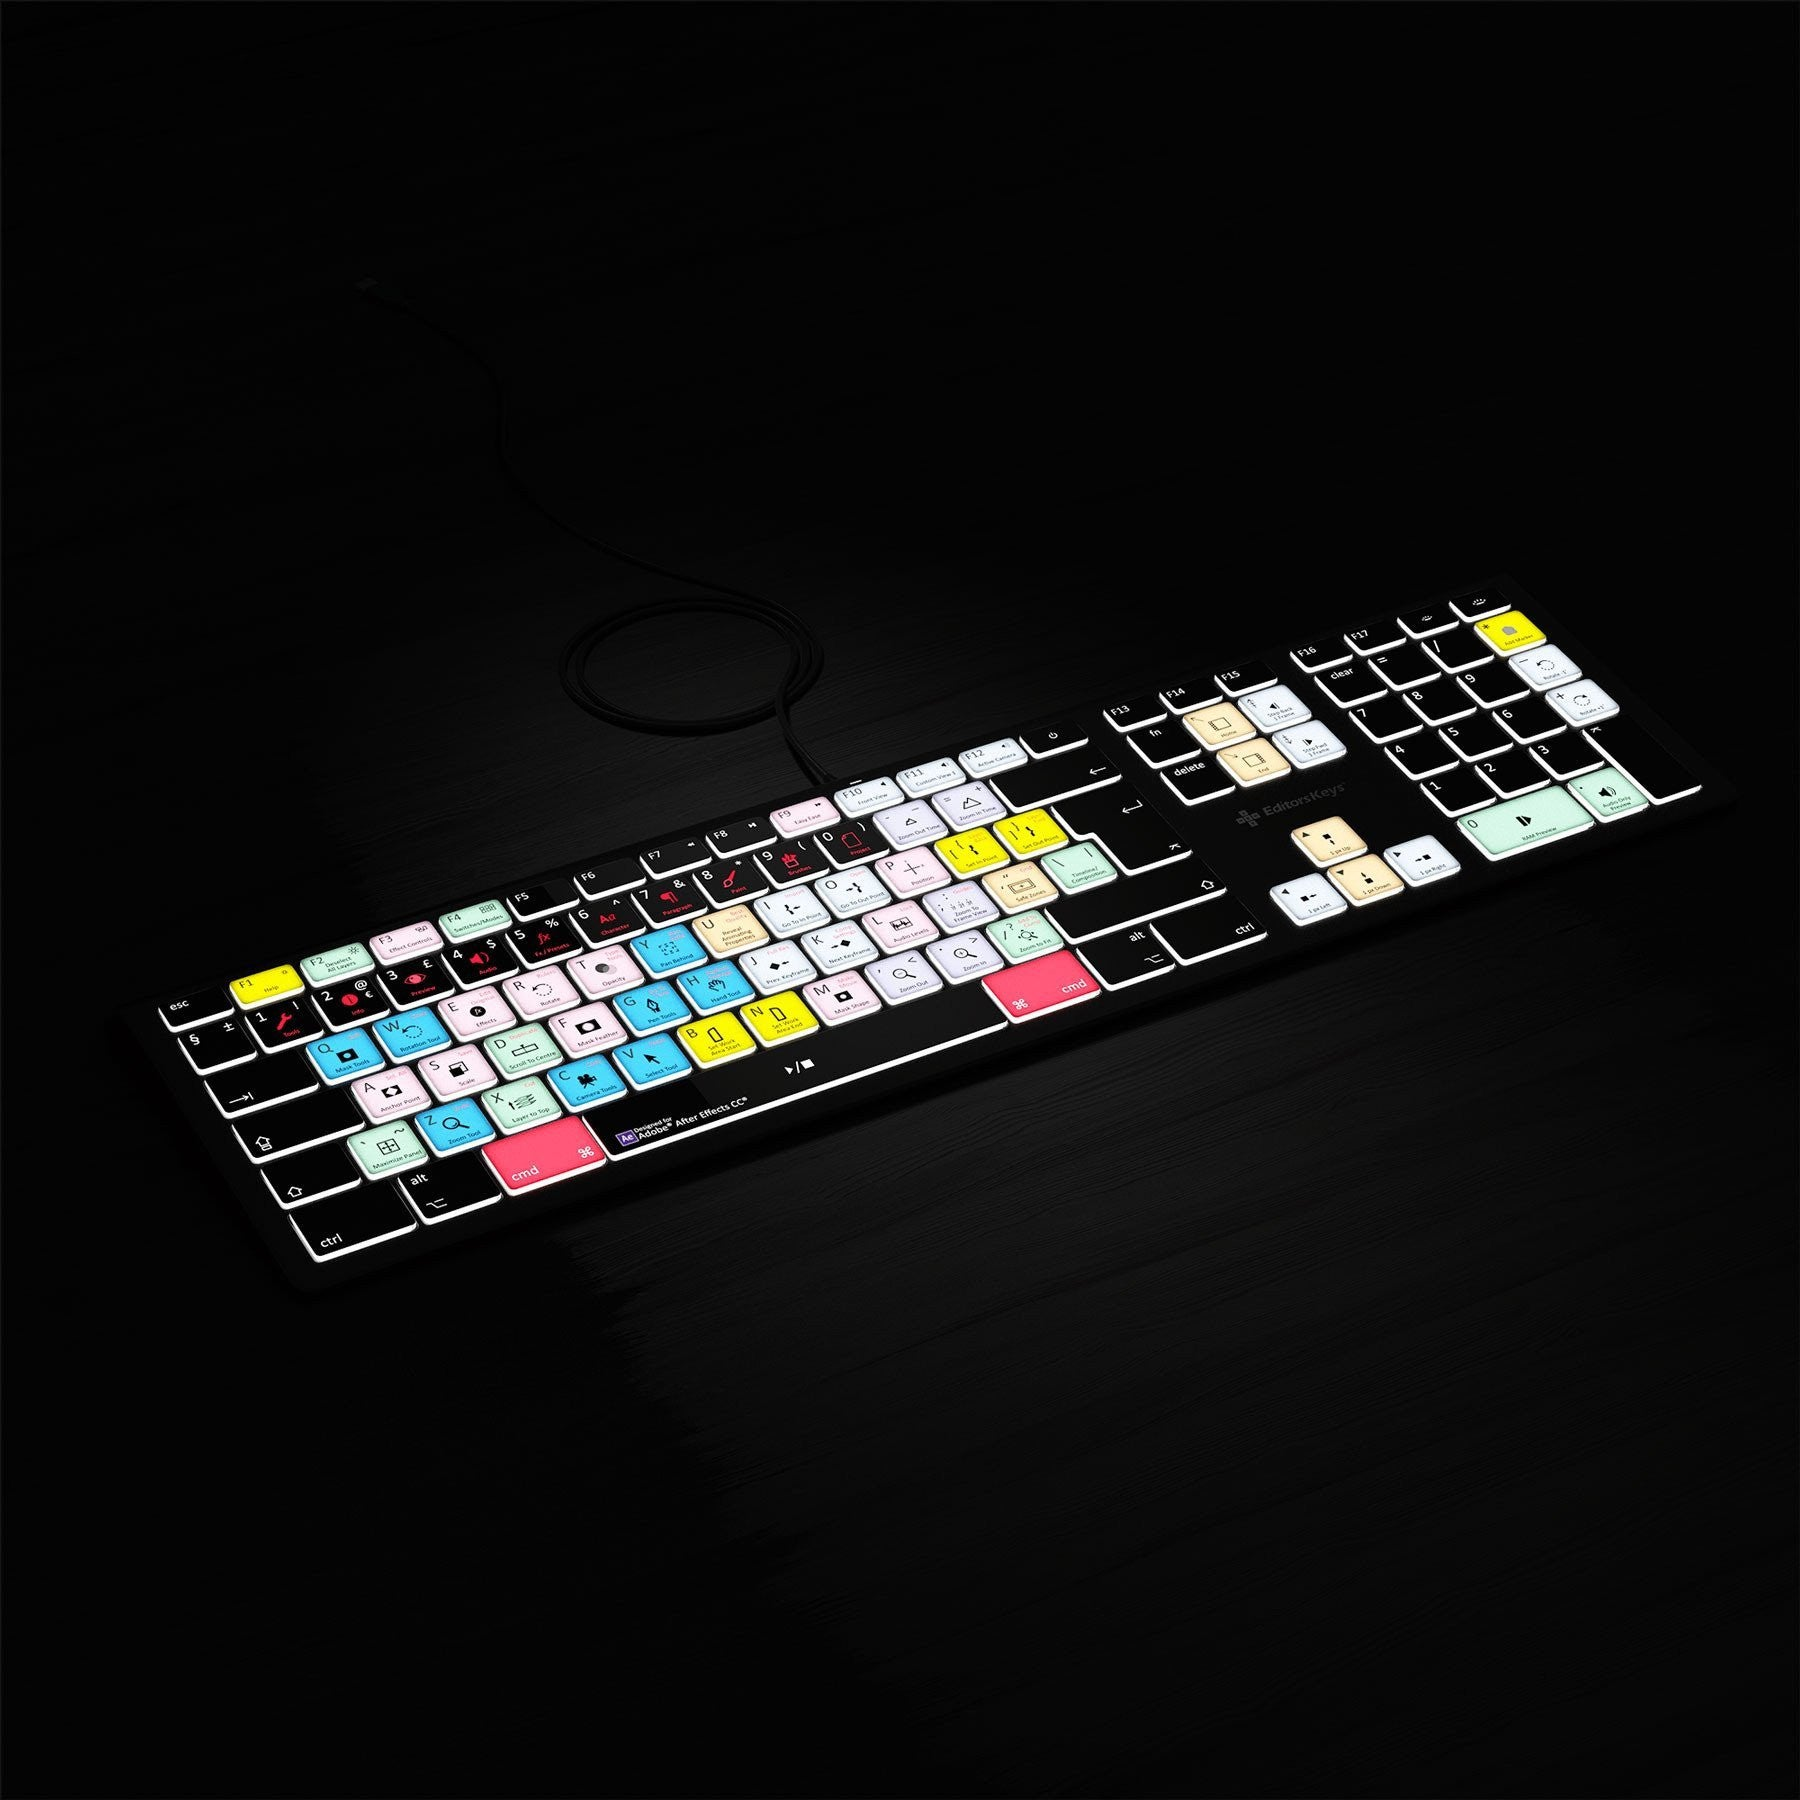 Adobe After Effects Keyboard - Backlit - For Mac or PC